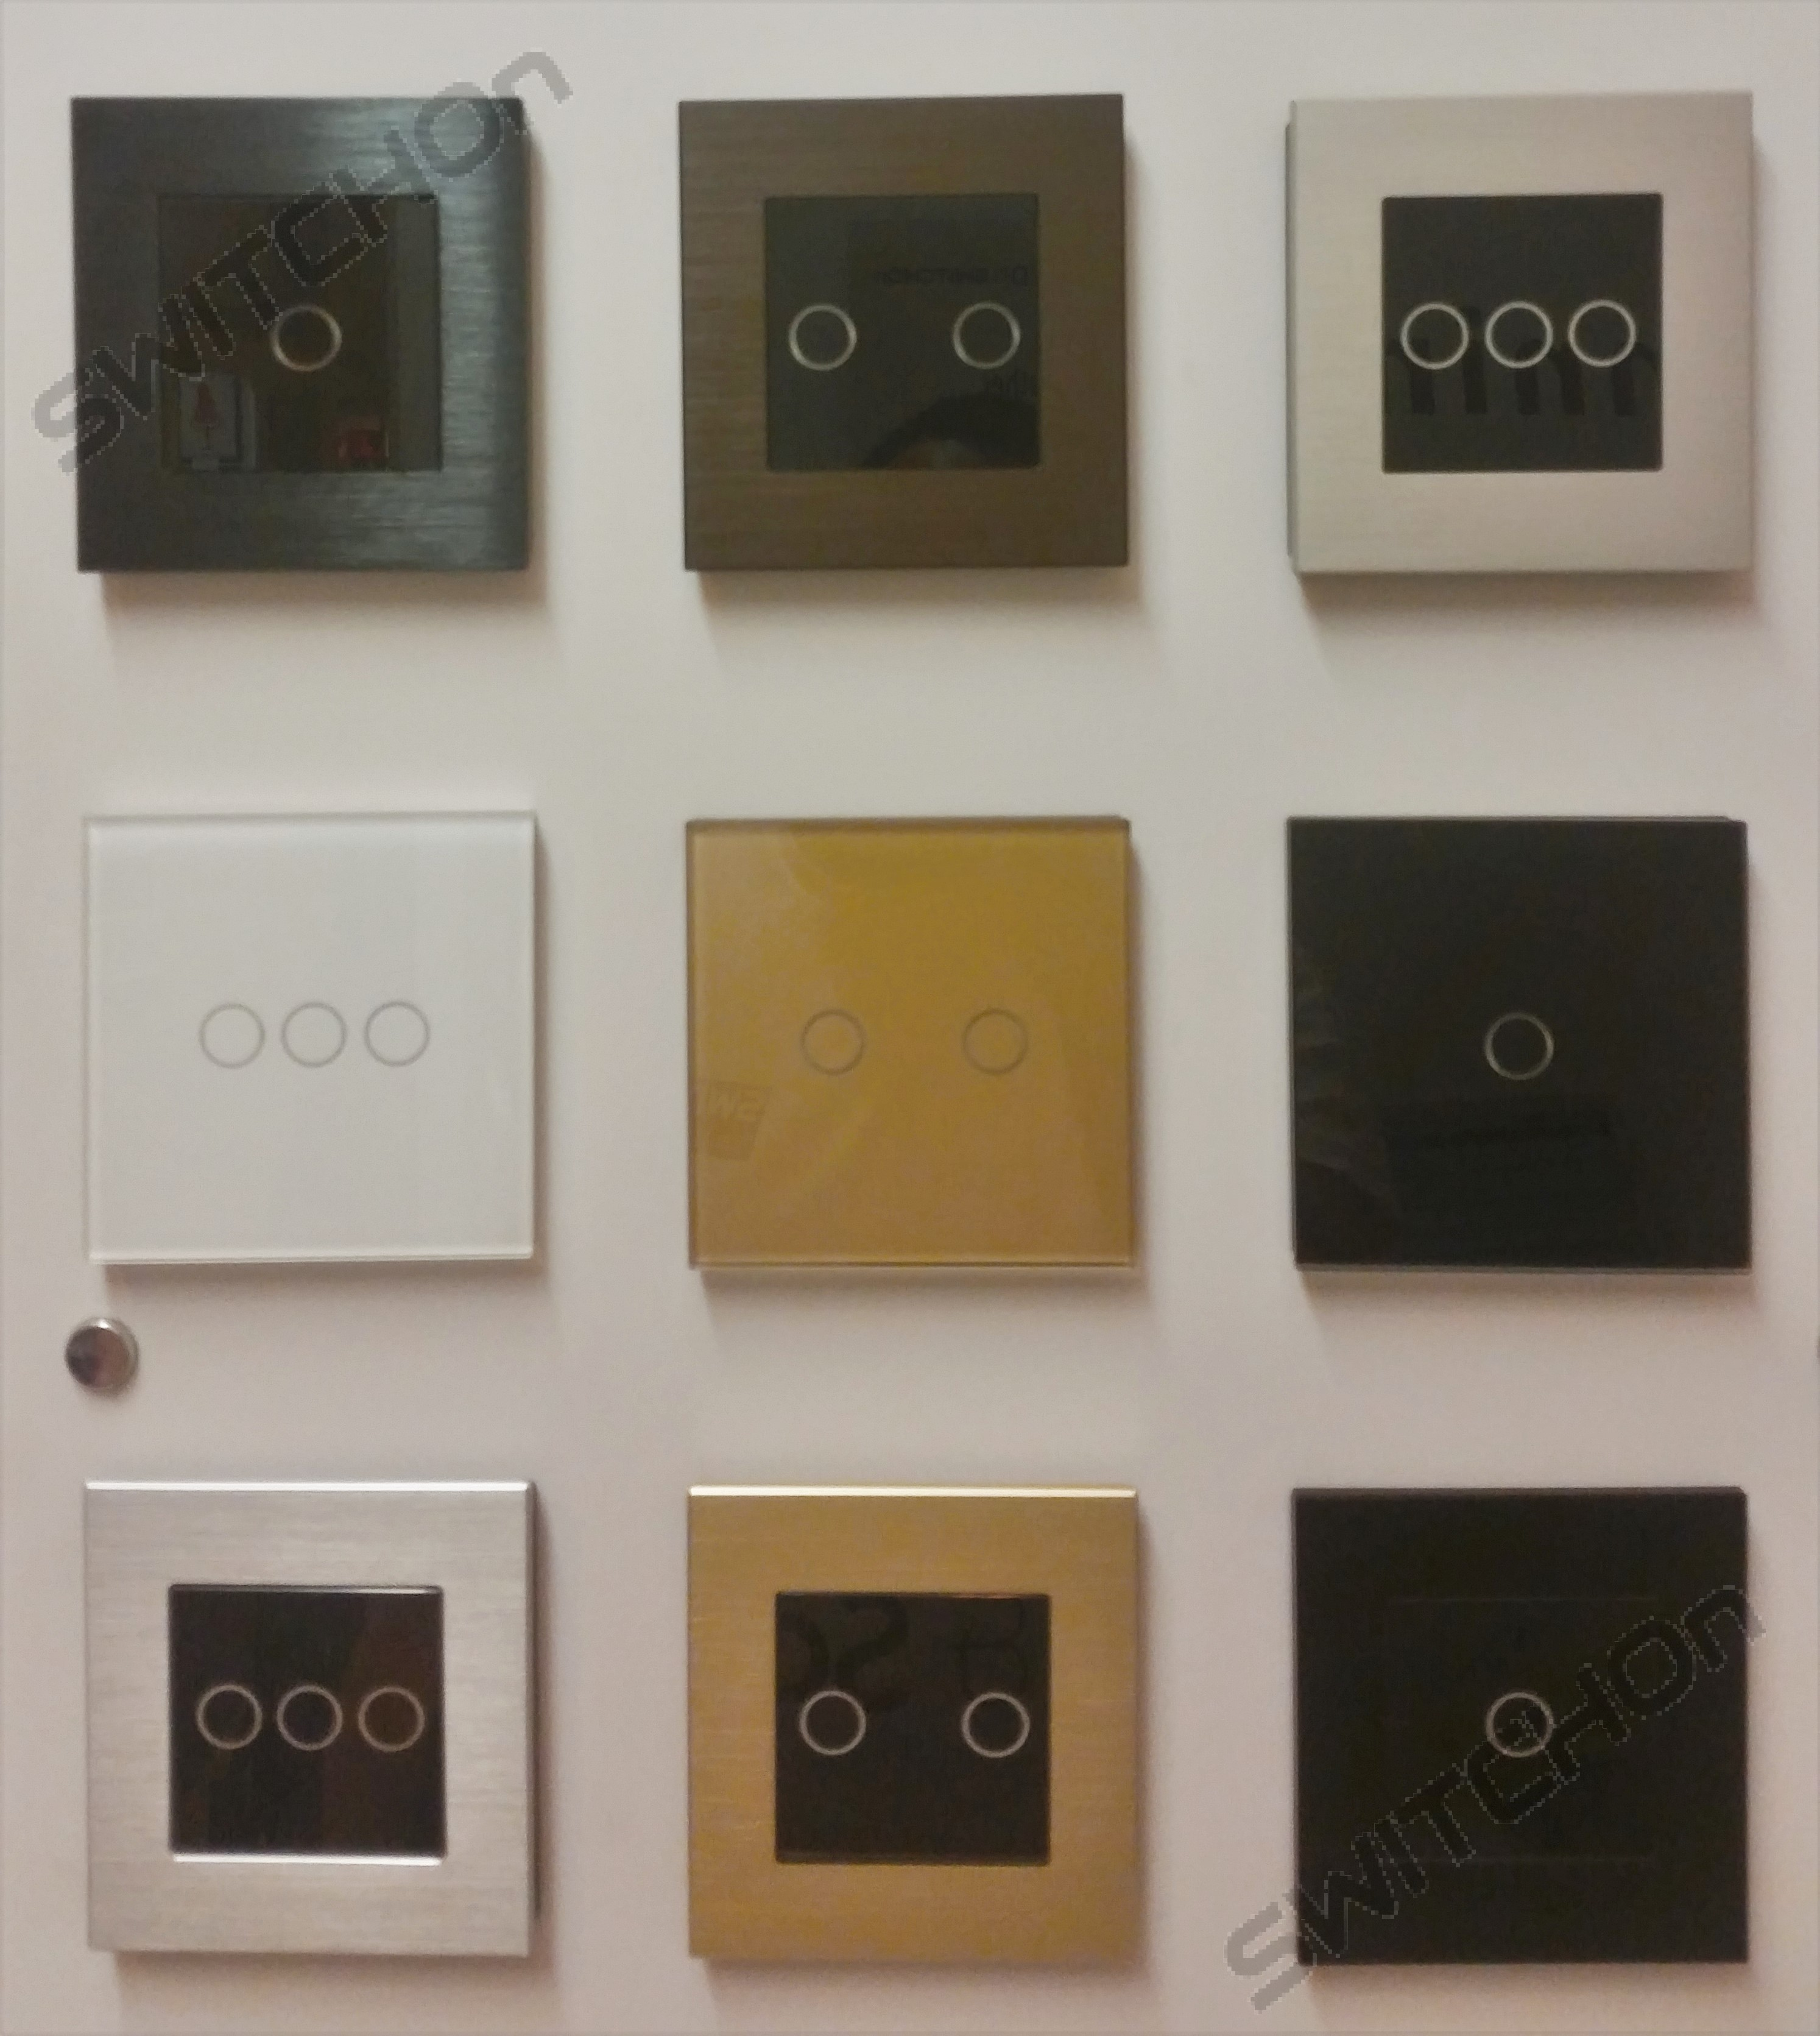 Glass touch dimmers LED Compatible (1, 2, 3 Gang in White, Gold or Black)